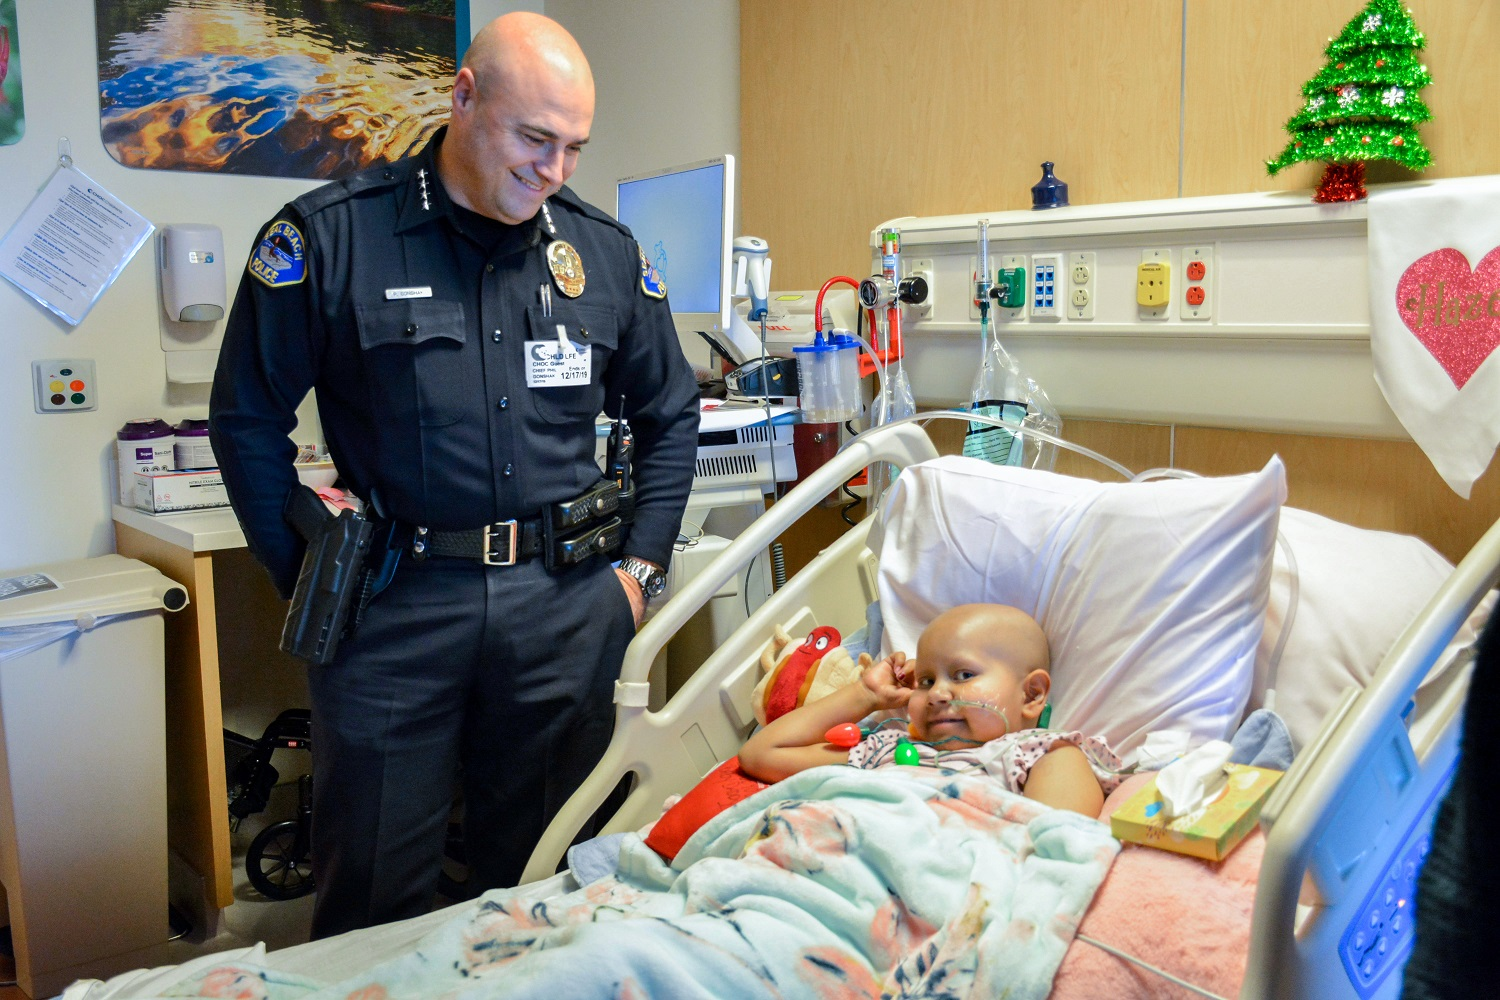 A police officer smiling at a child in a hospital room with holiday decorations; the child is wearing a holiday light necklace